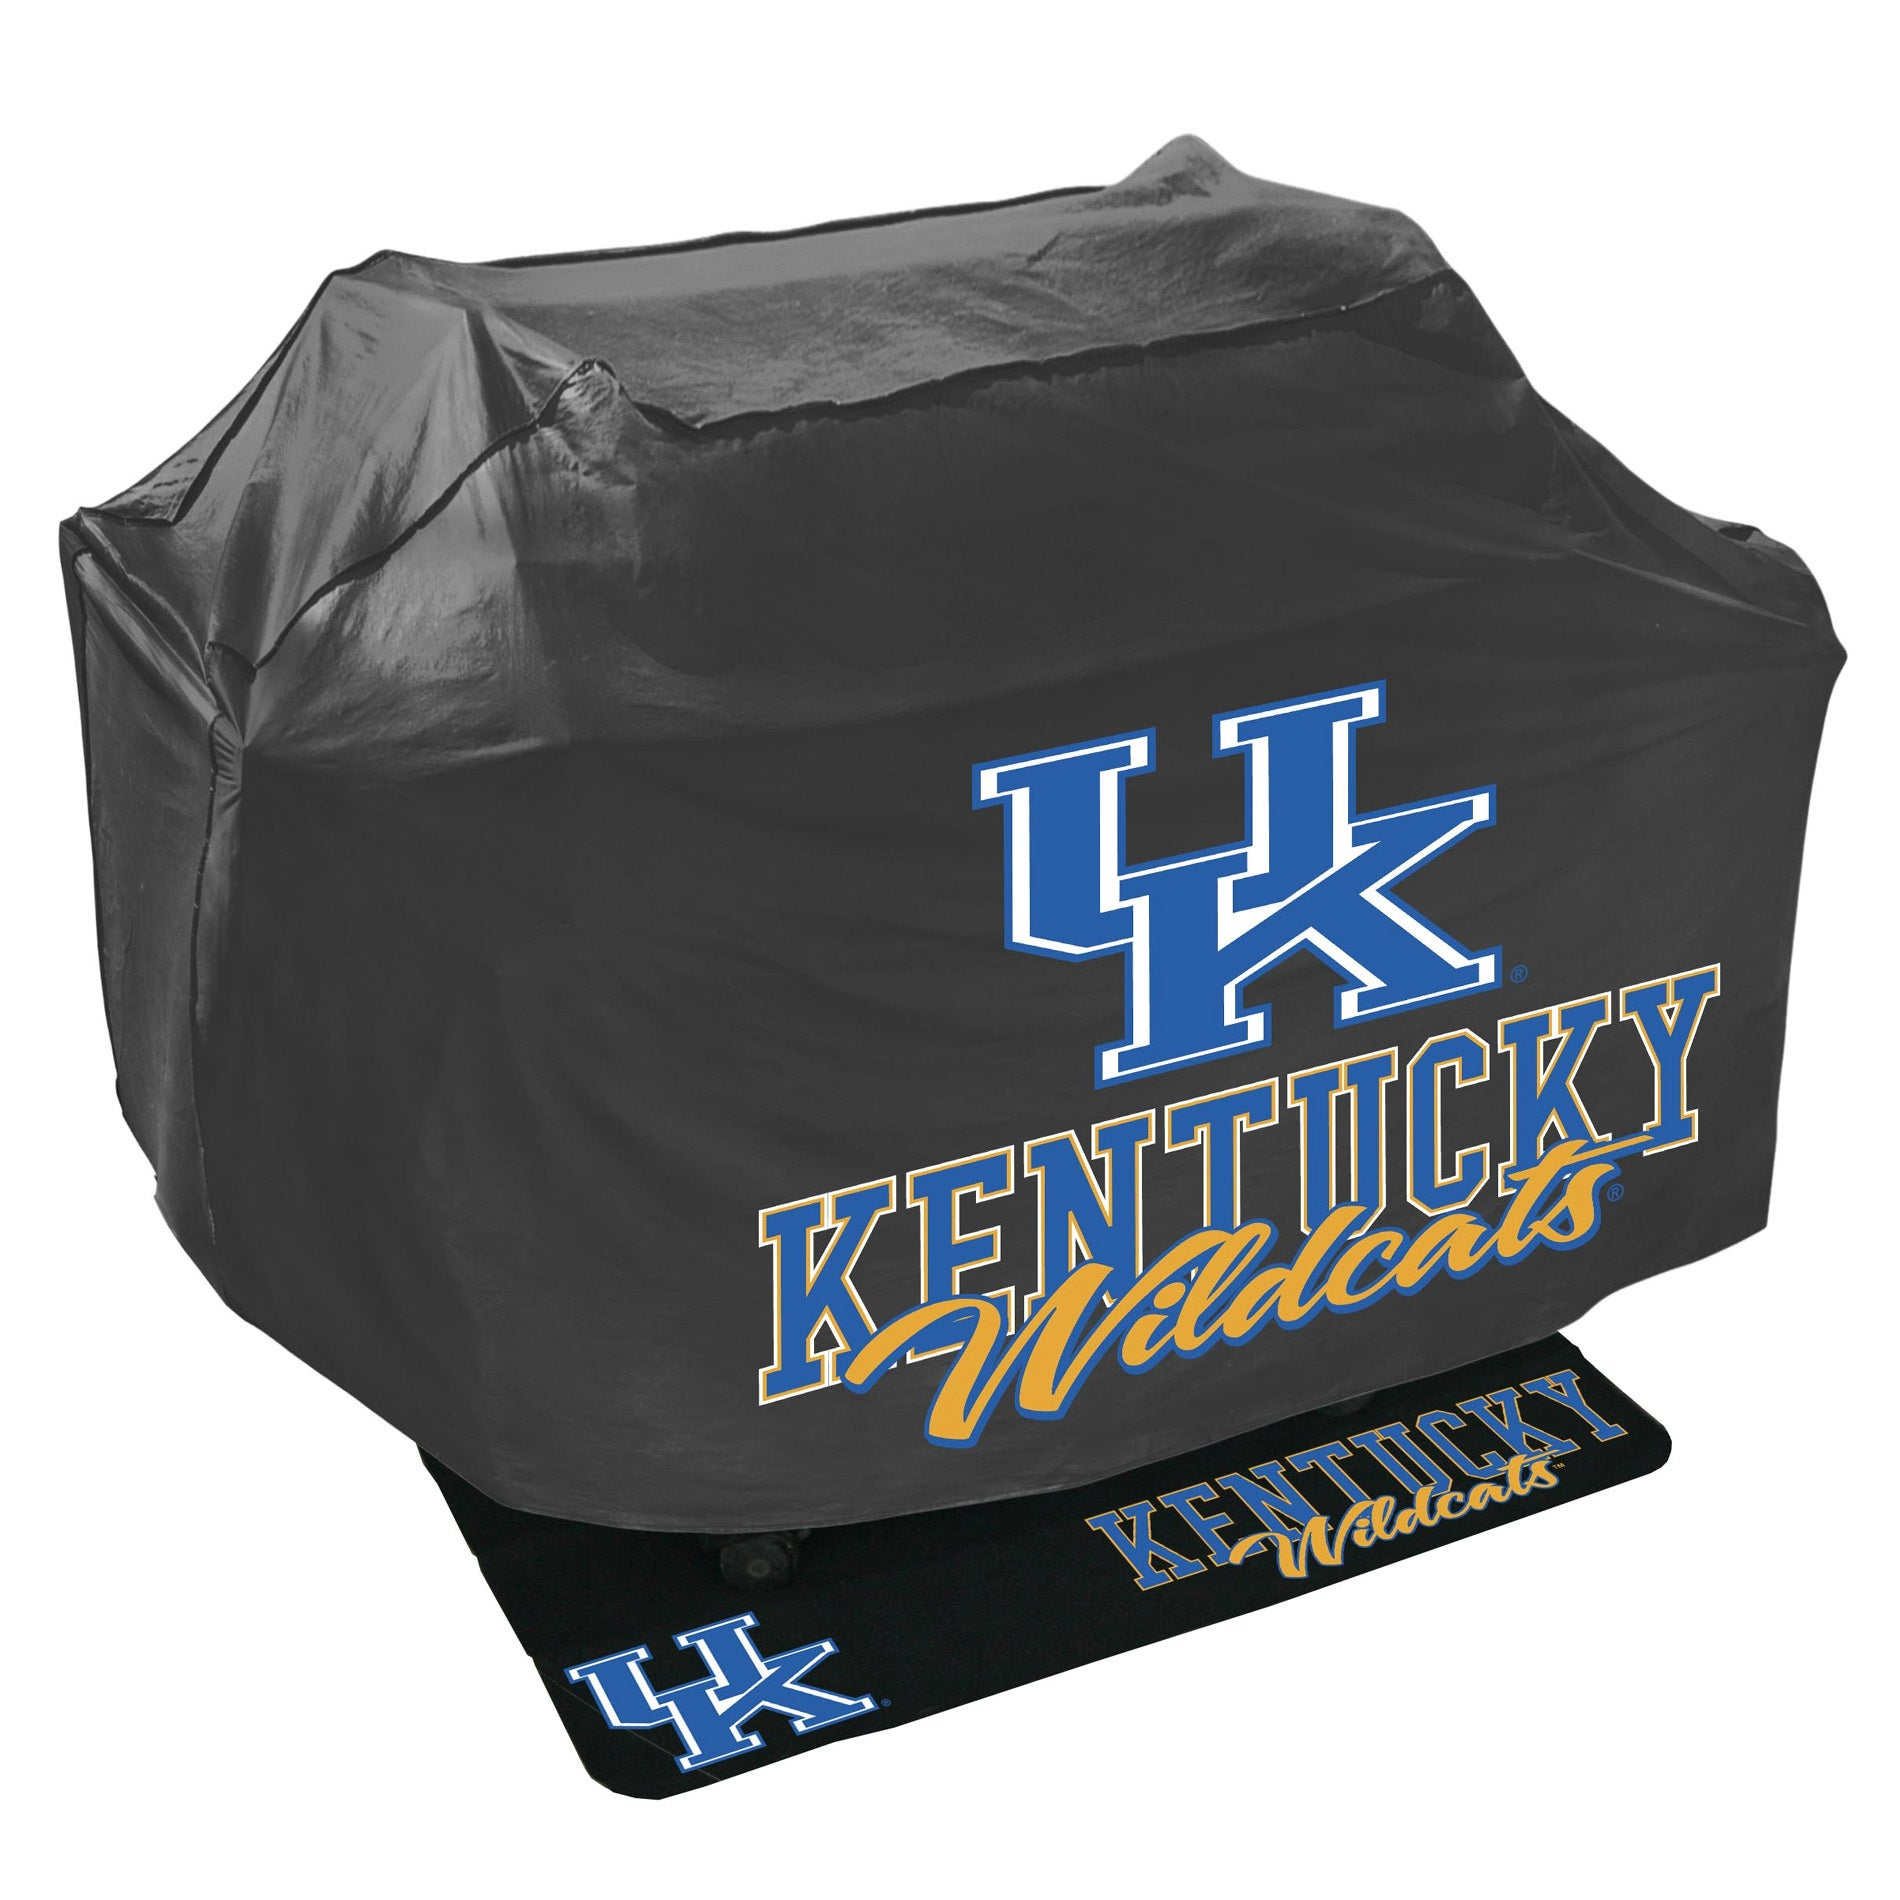 Kentucky Wildcats Grill Cover and Mat Set